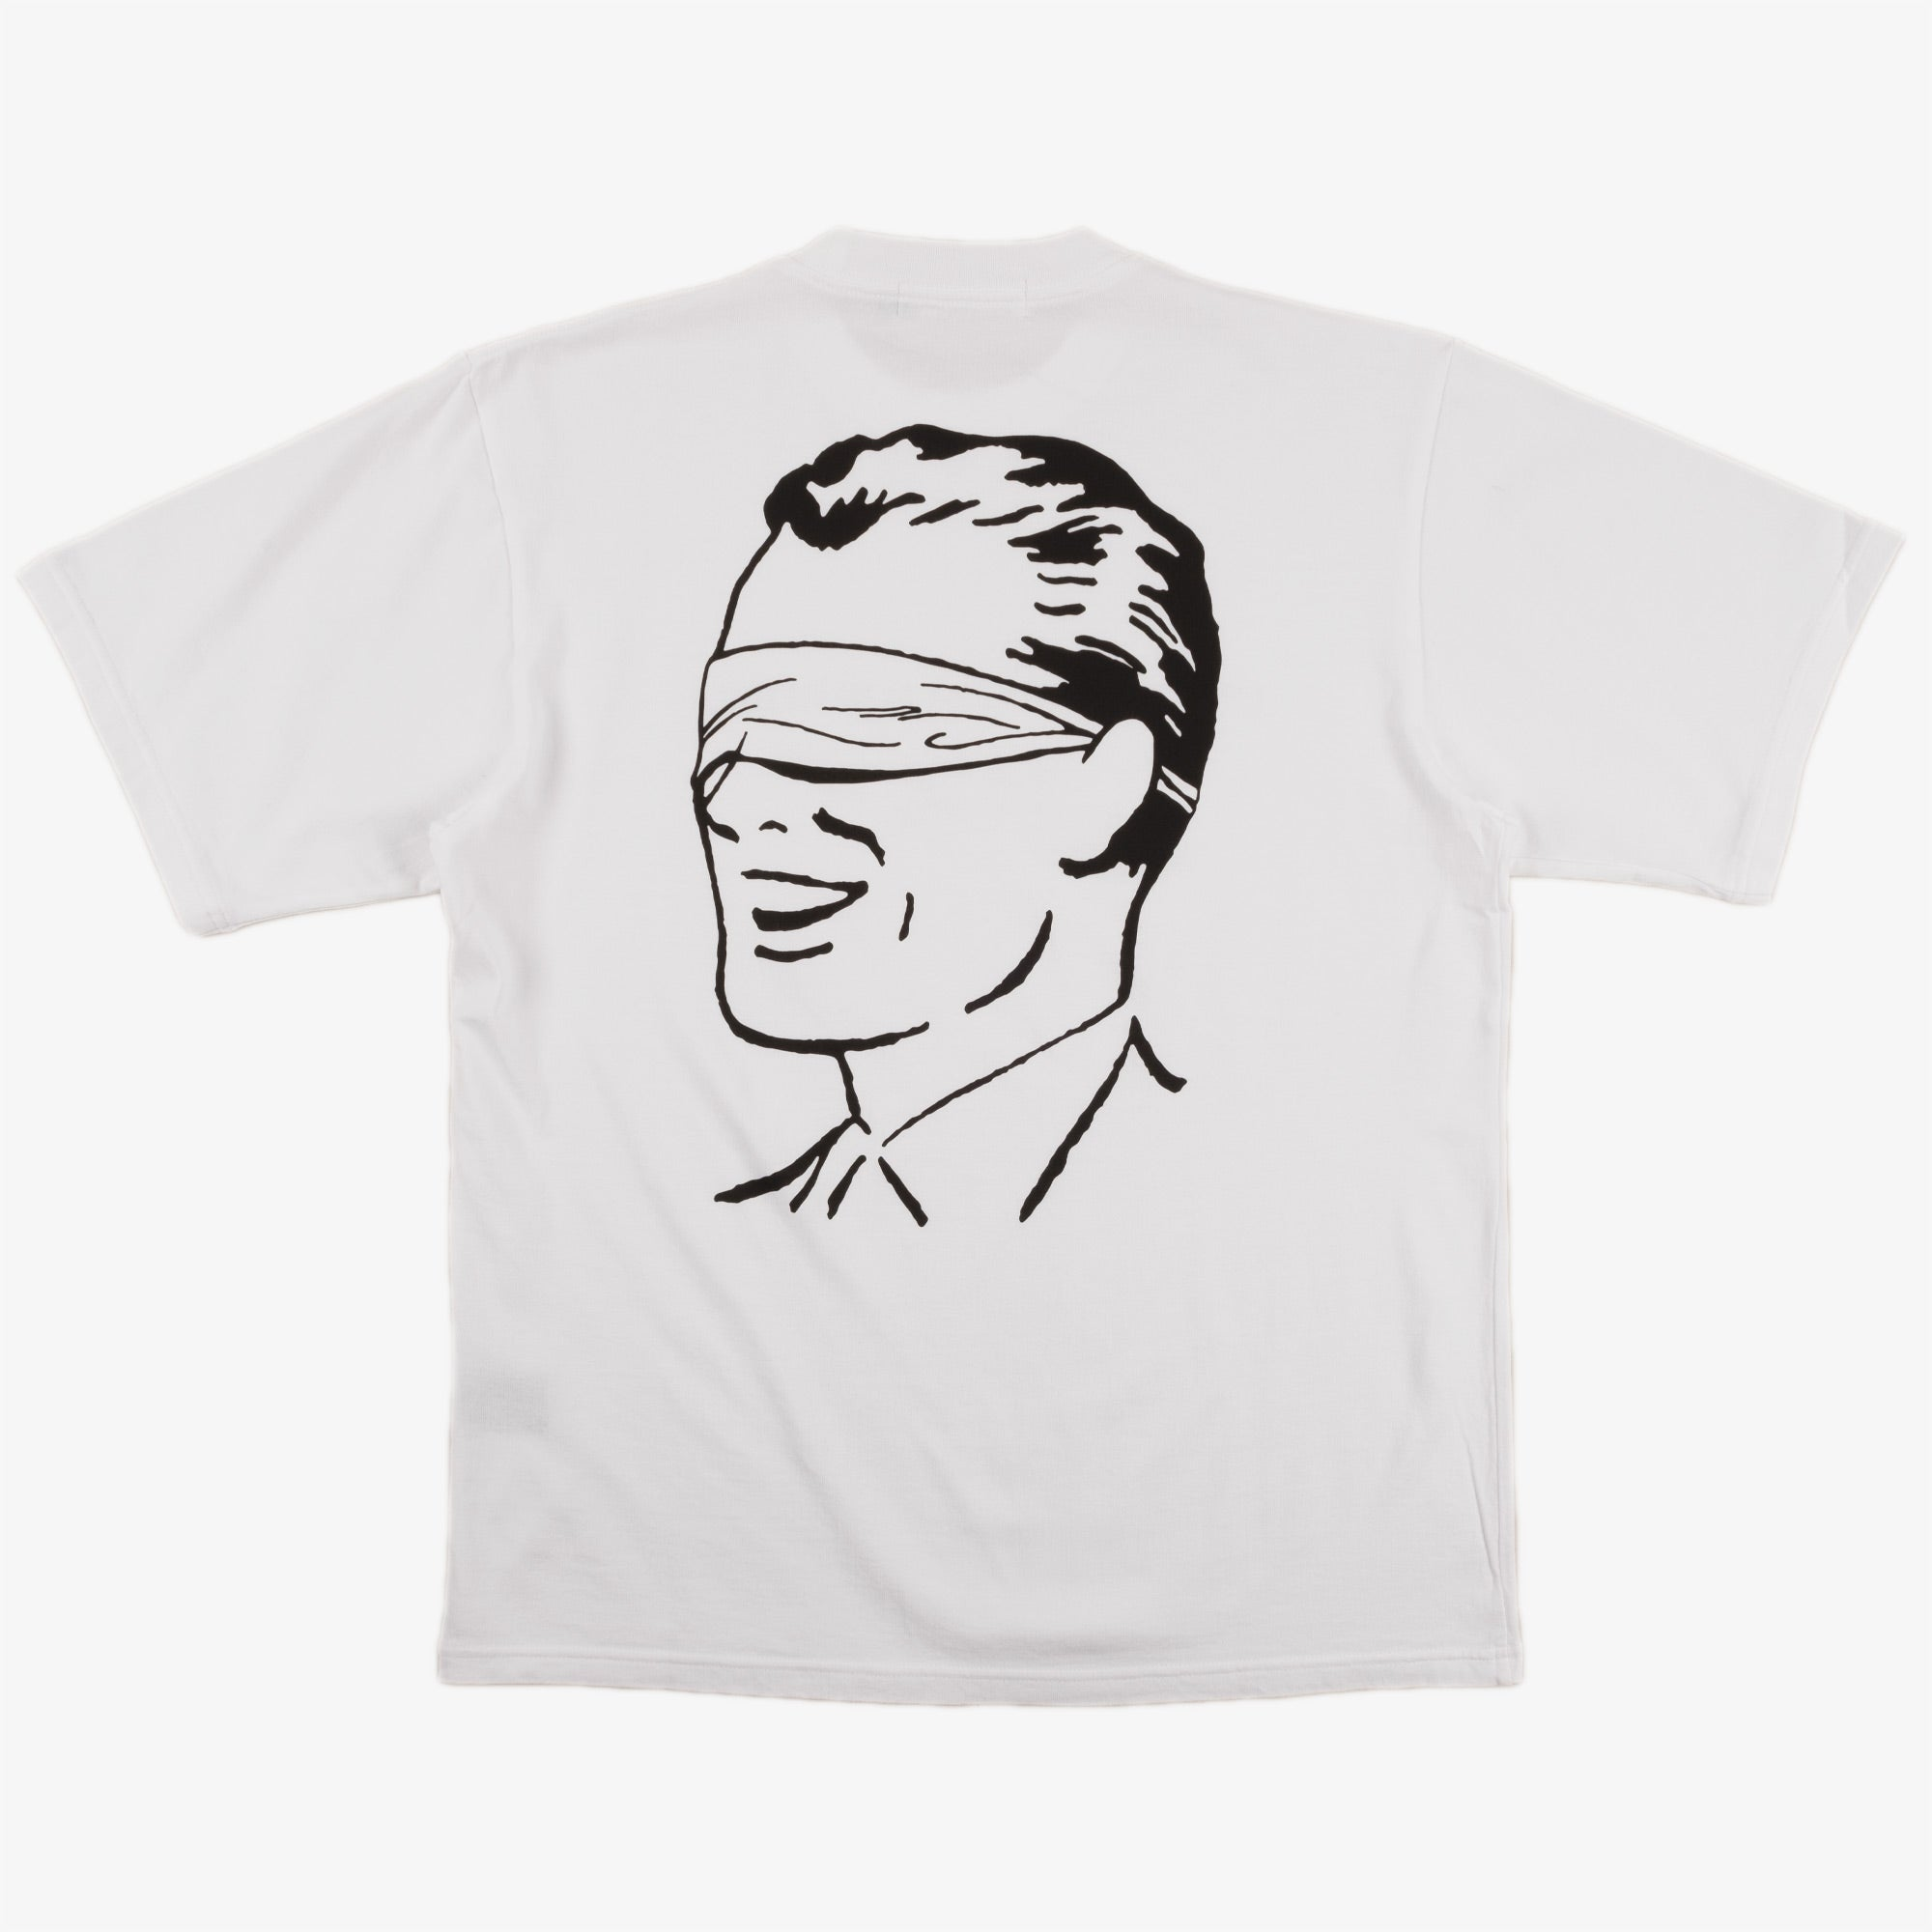 Undercover Blindfold Tee UC2A3807 - White 2